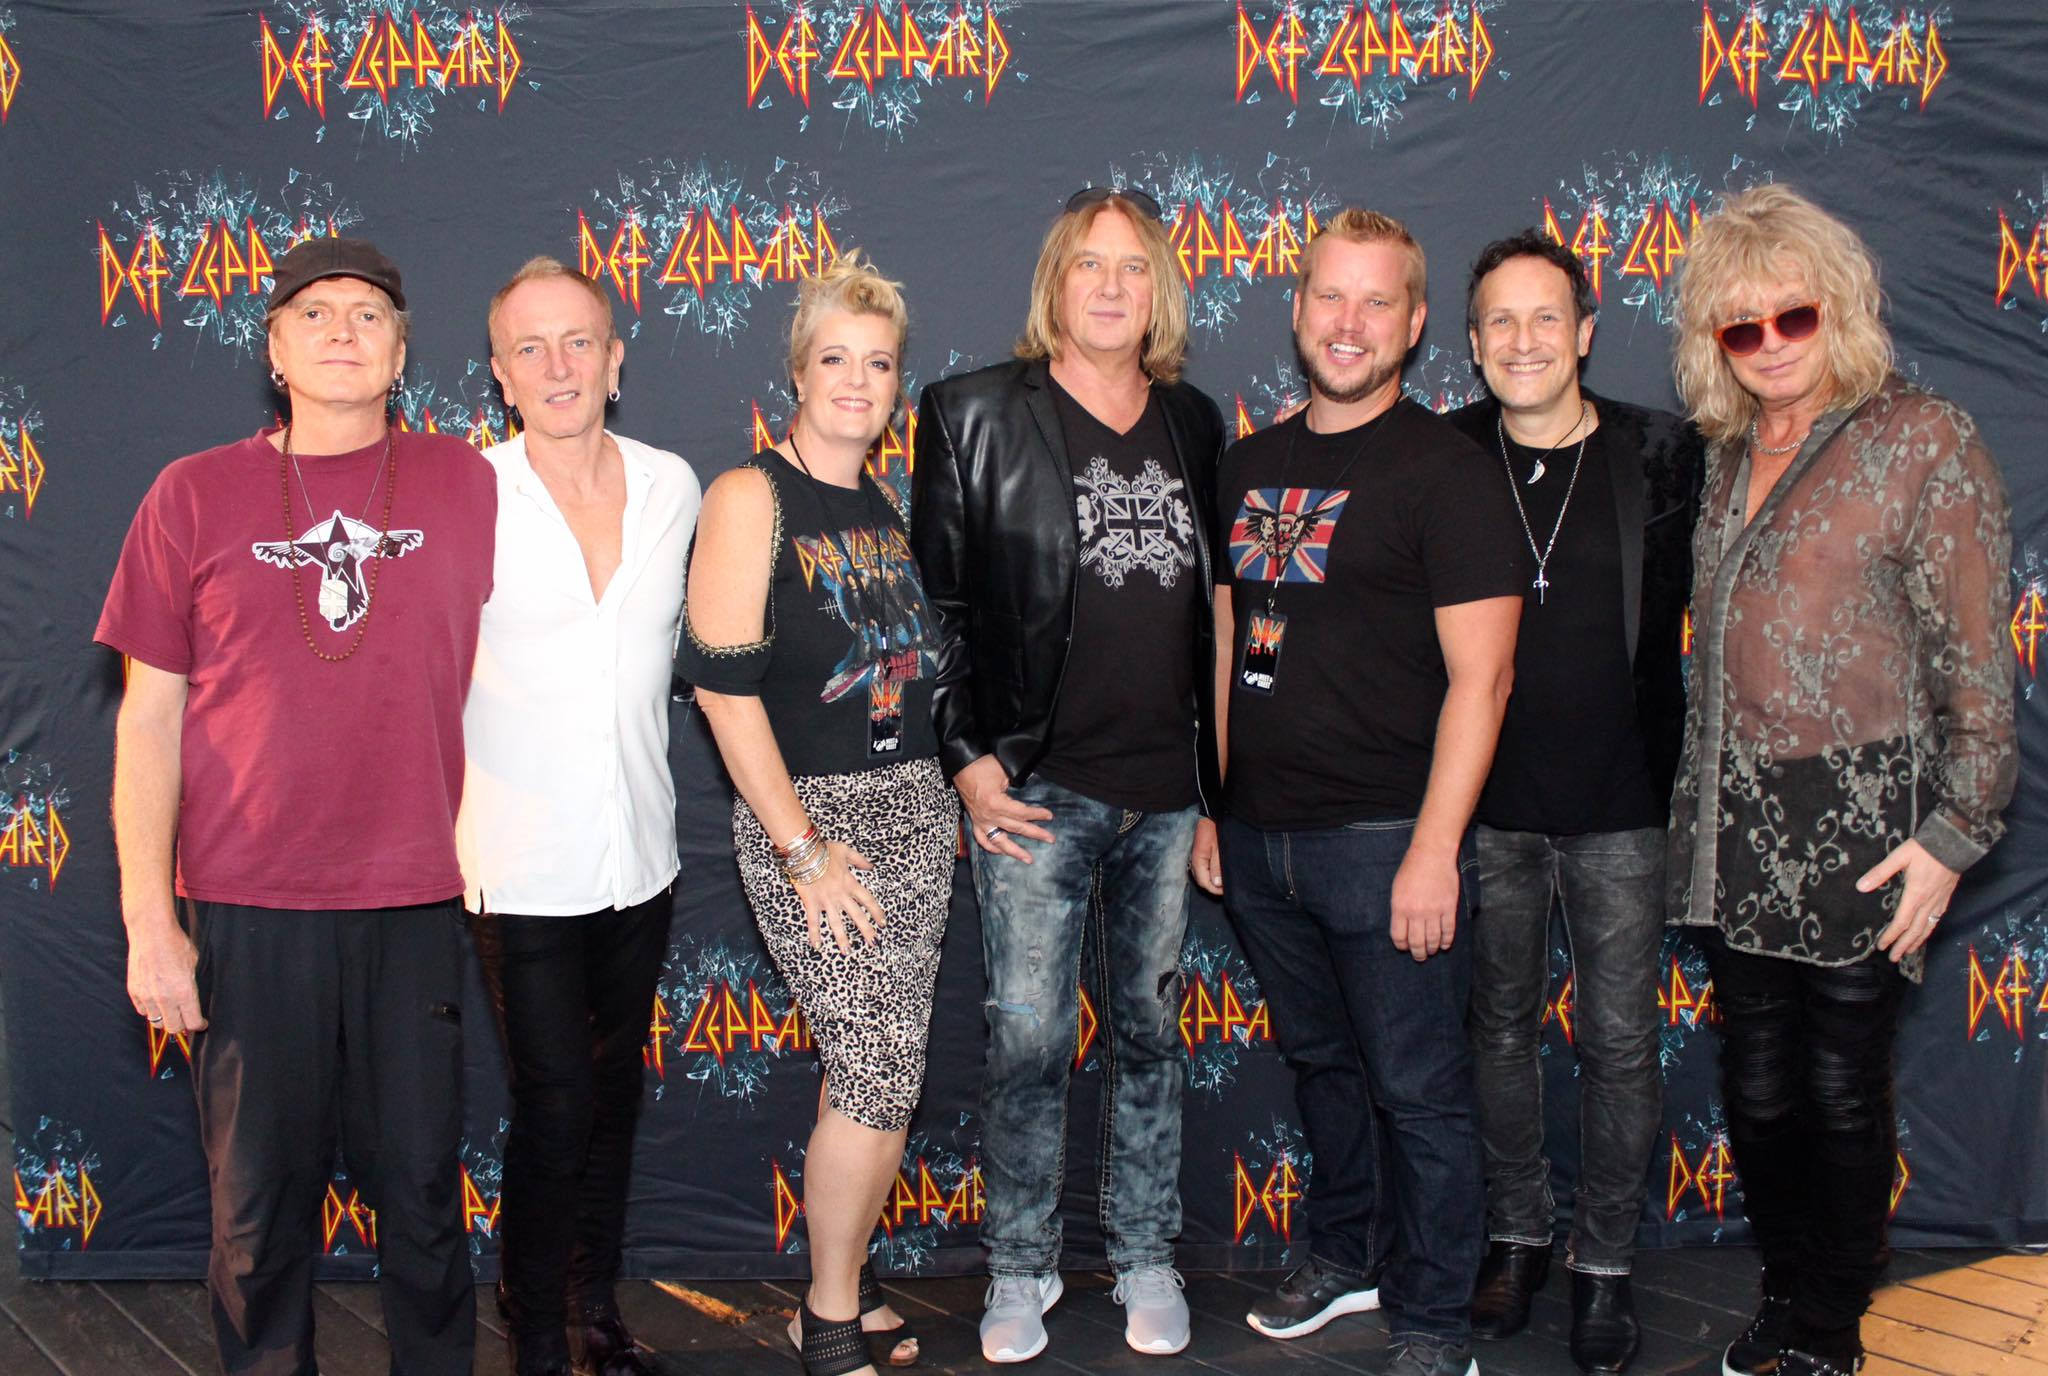 Irvine M&G, 2016 - Joe was in the black & white lions crest & wings. Lena's husband was in the classic original ICJUK Union Jack with skulls & wings.